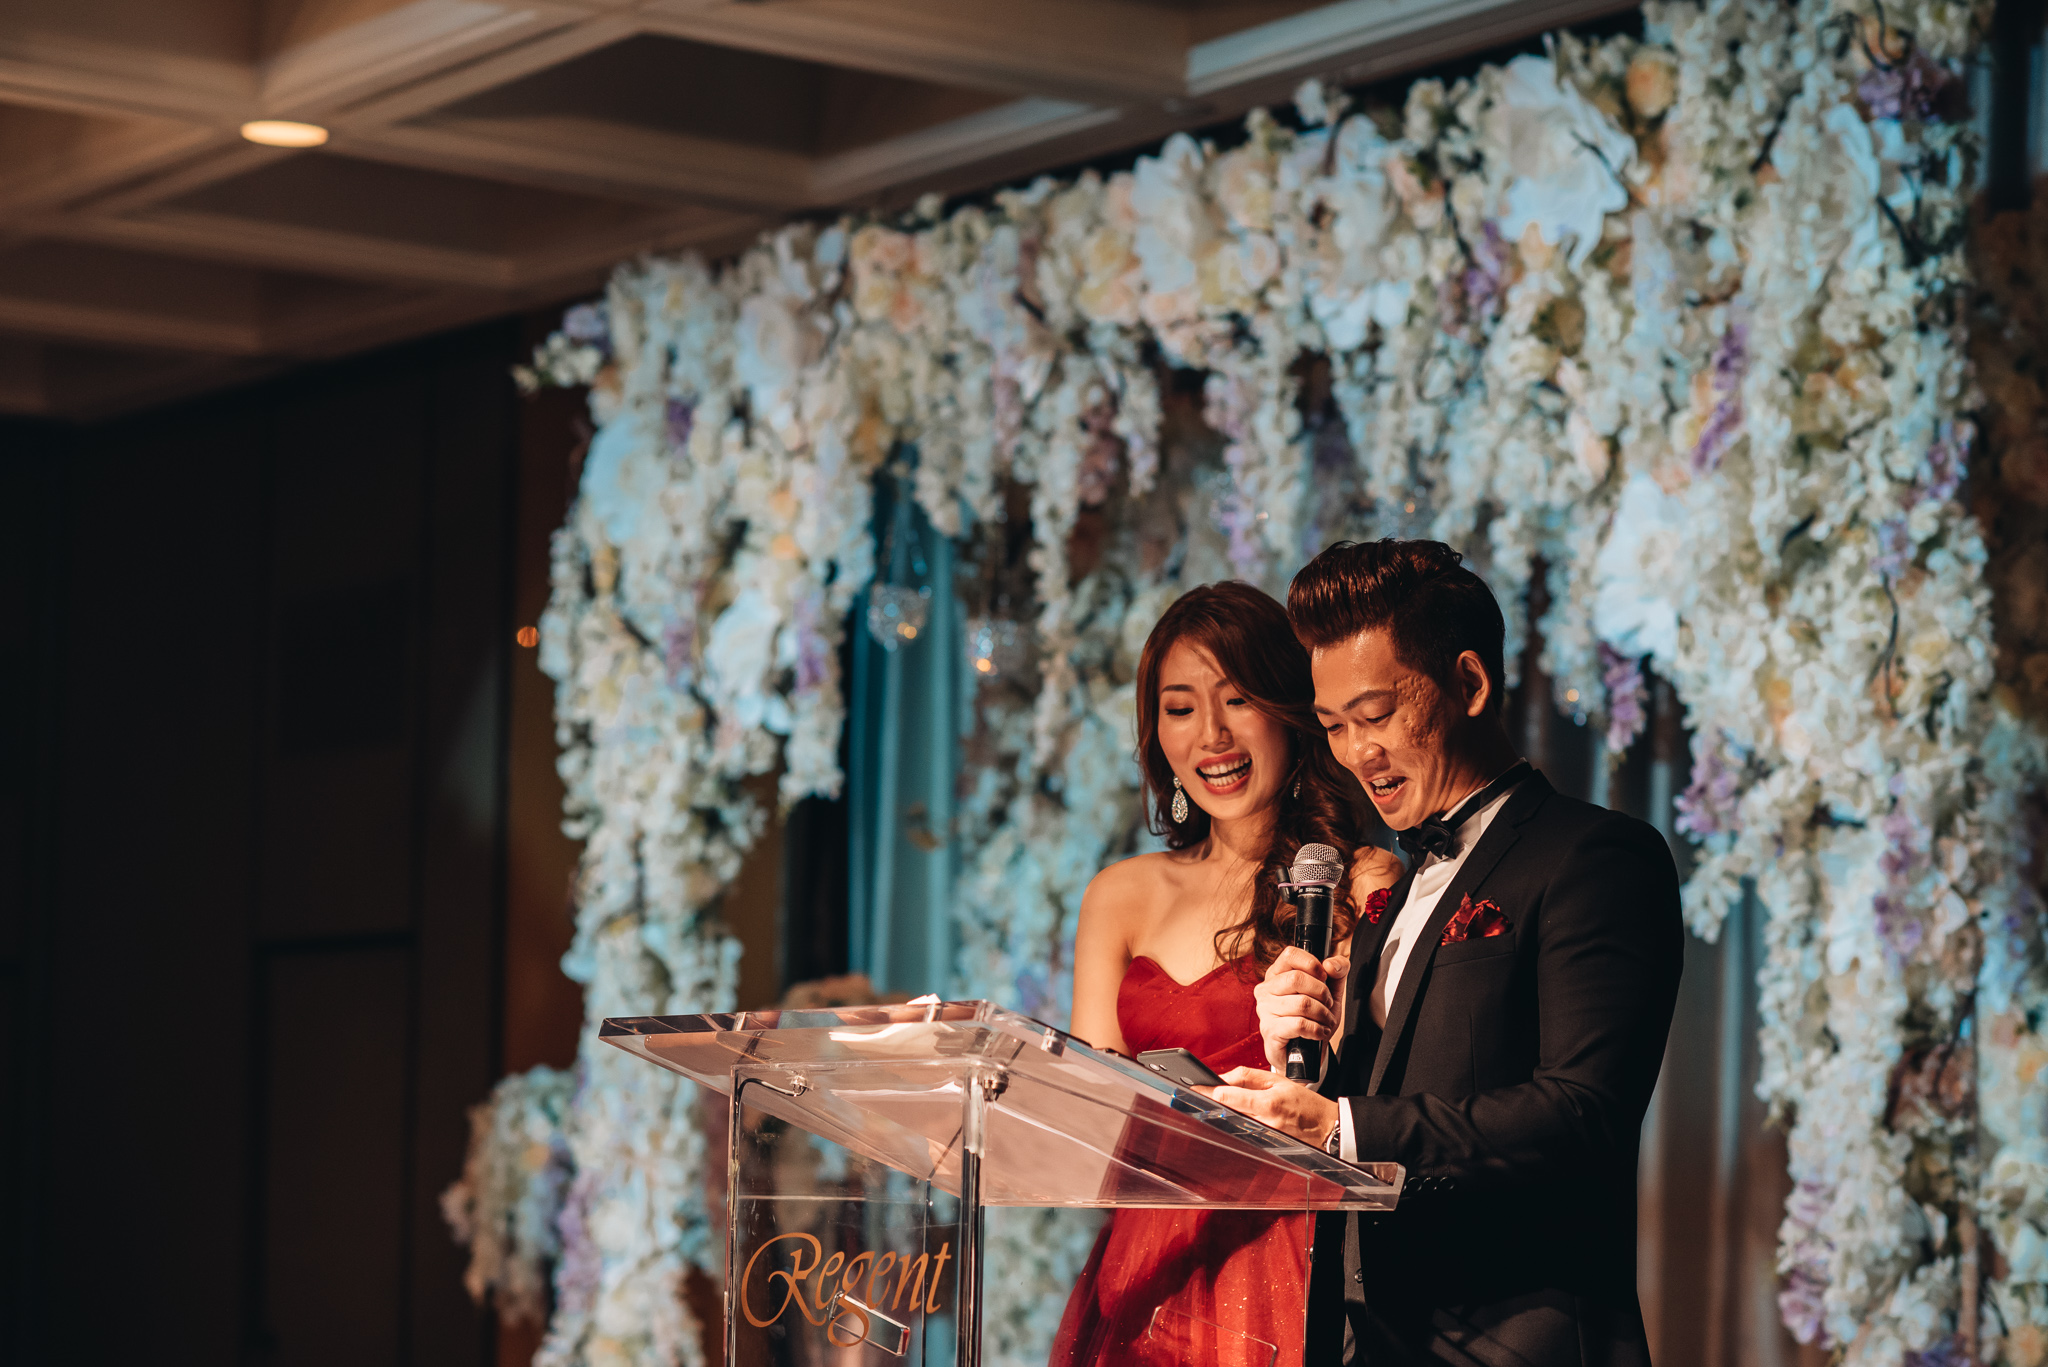 Cindy & Kevin Wedding Day Highlights (resized for sharing) - 206.jpg